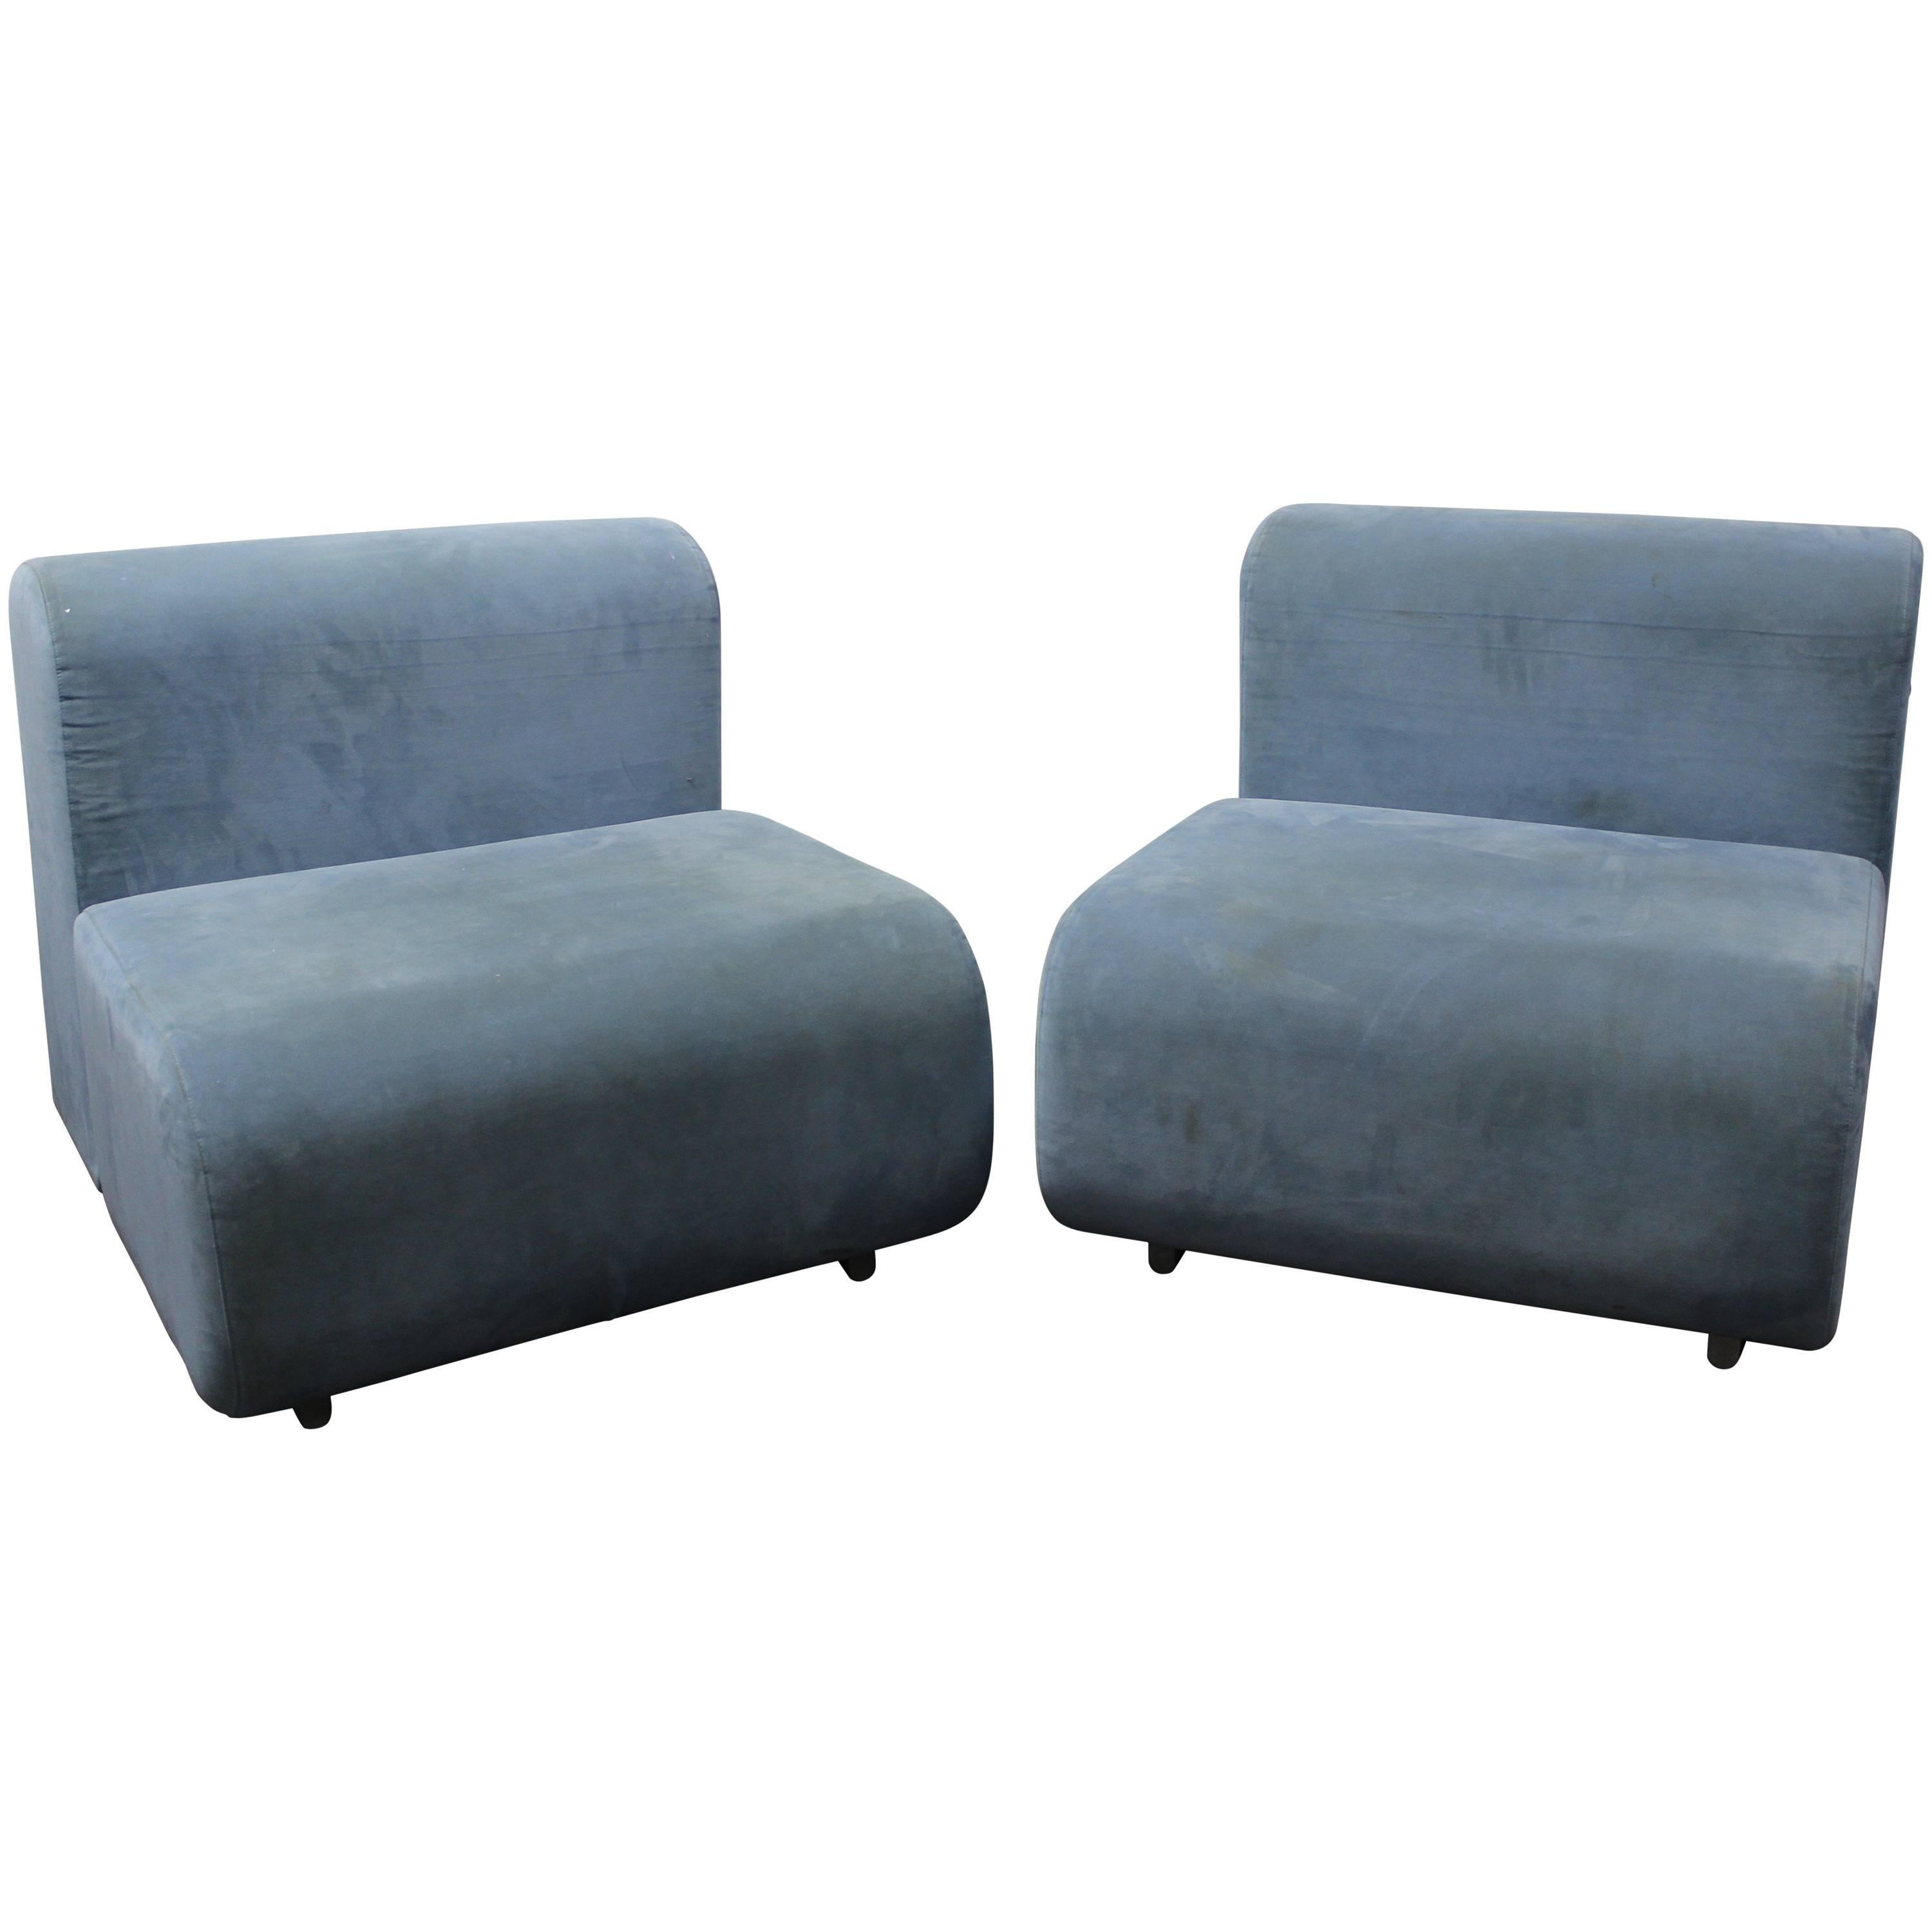 Pair of Suzanne Lounge Chairs by Kazuhide Takahama for Knoll